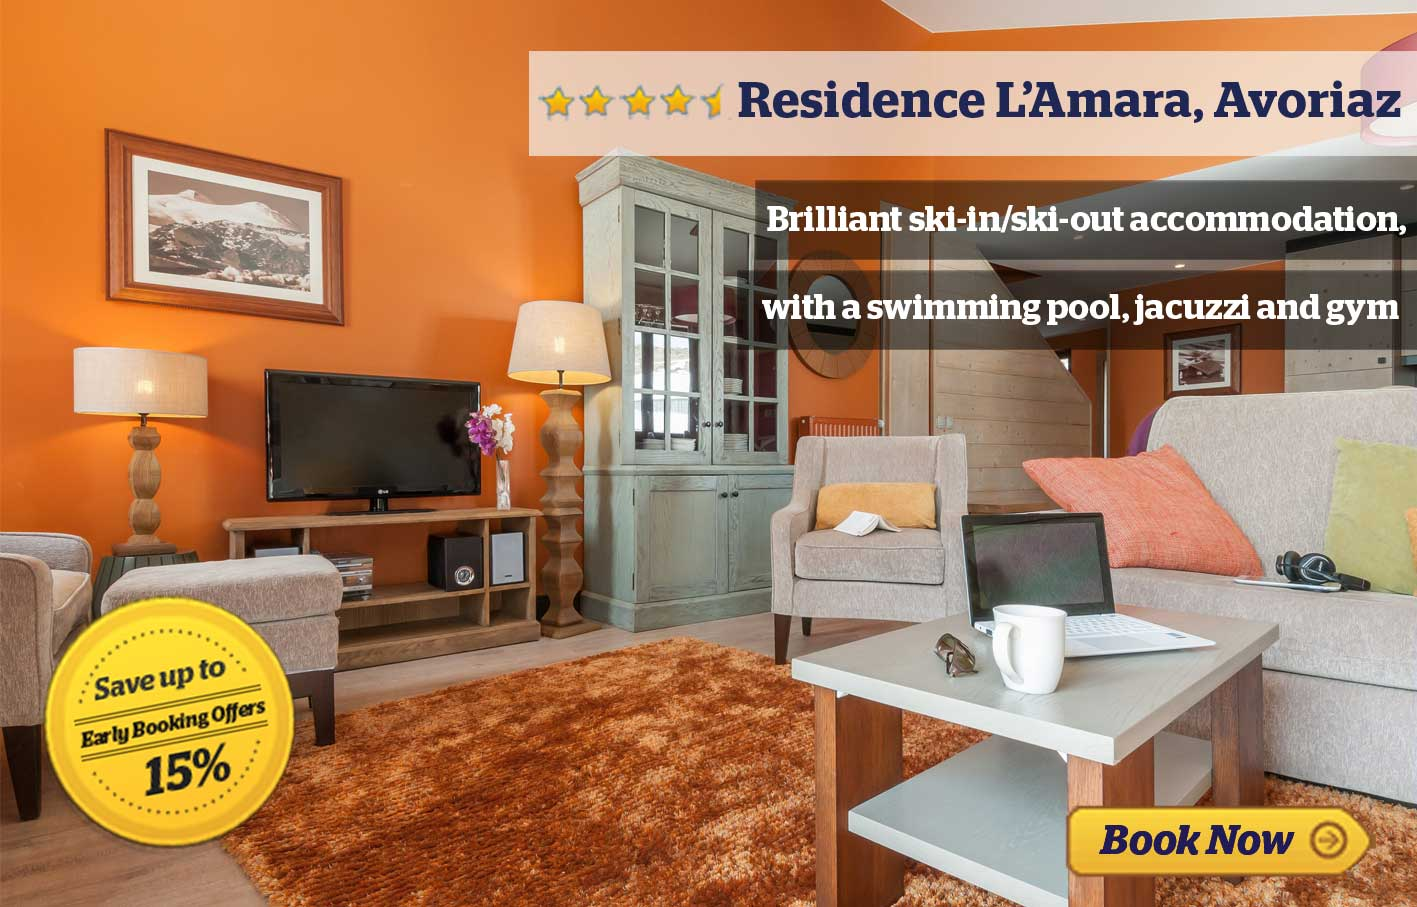 Residence L'Amara - save up to 10%